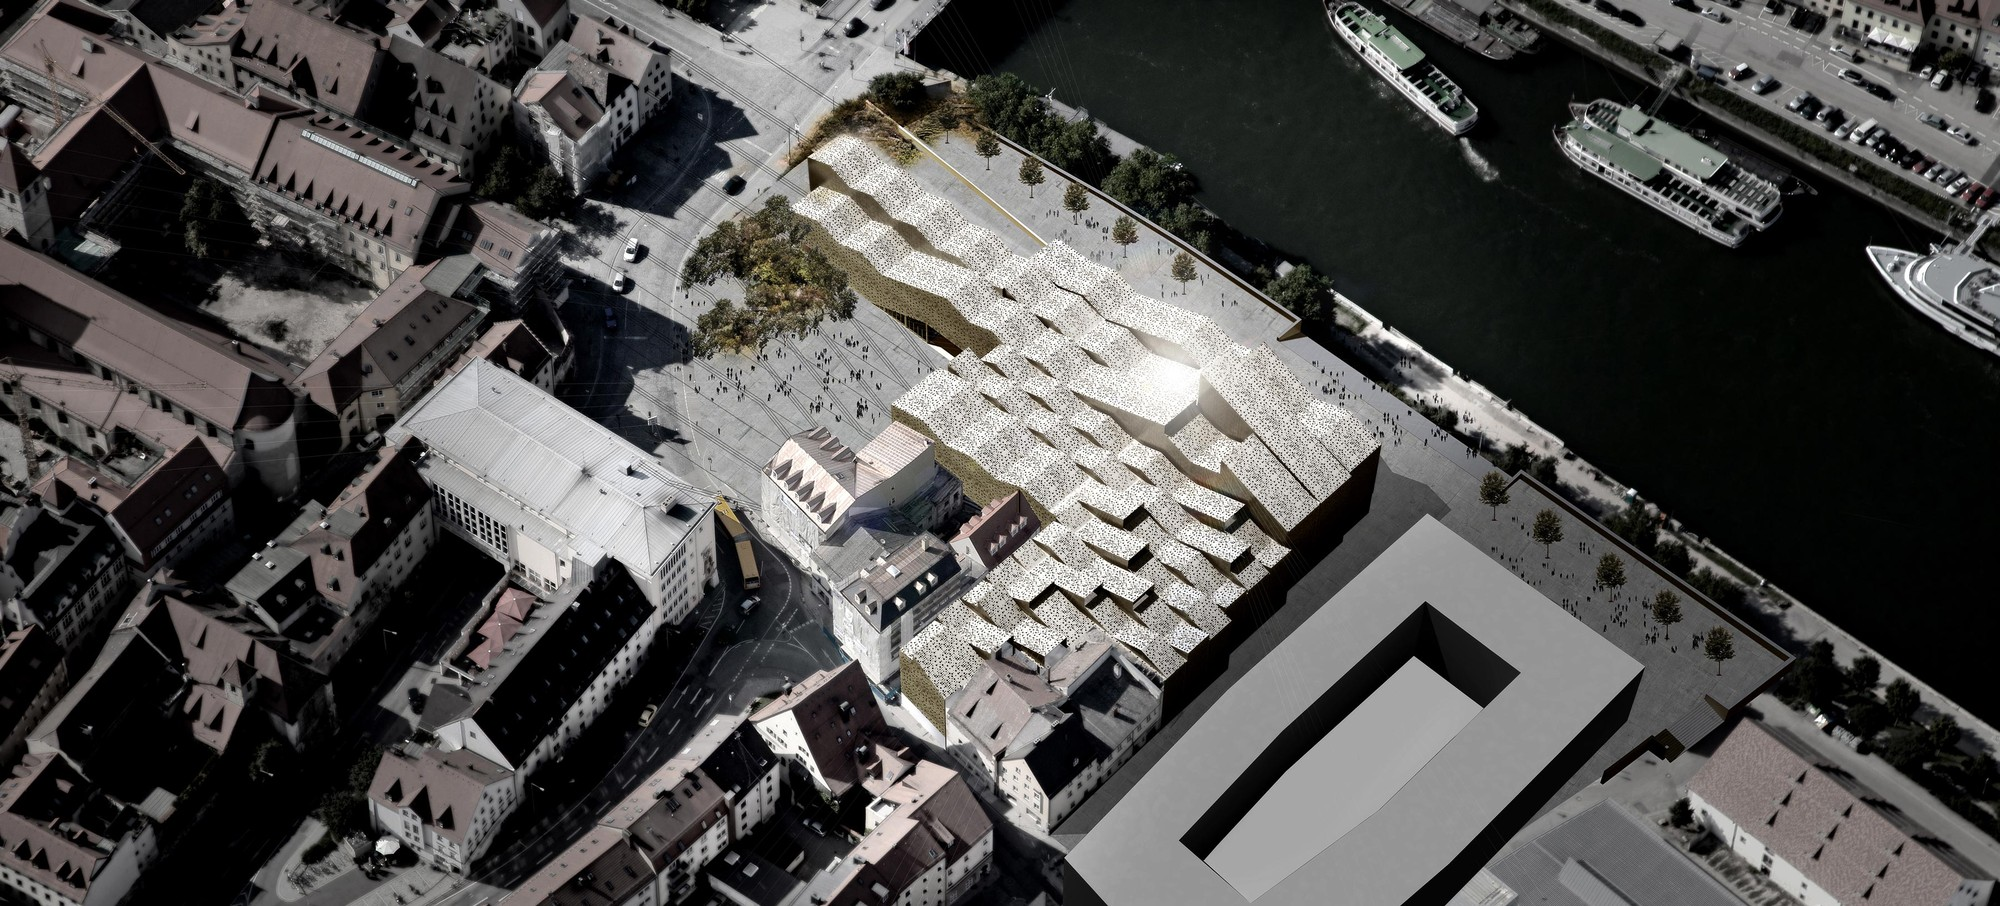 Gallery of bavarian history museum competition entry x for Team x architecture